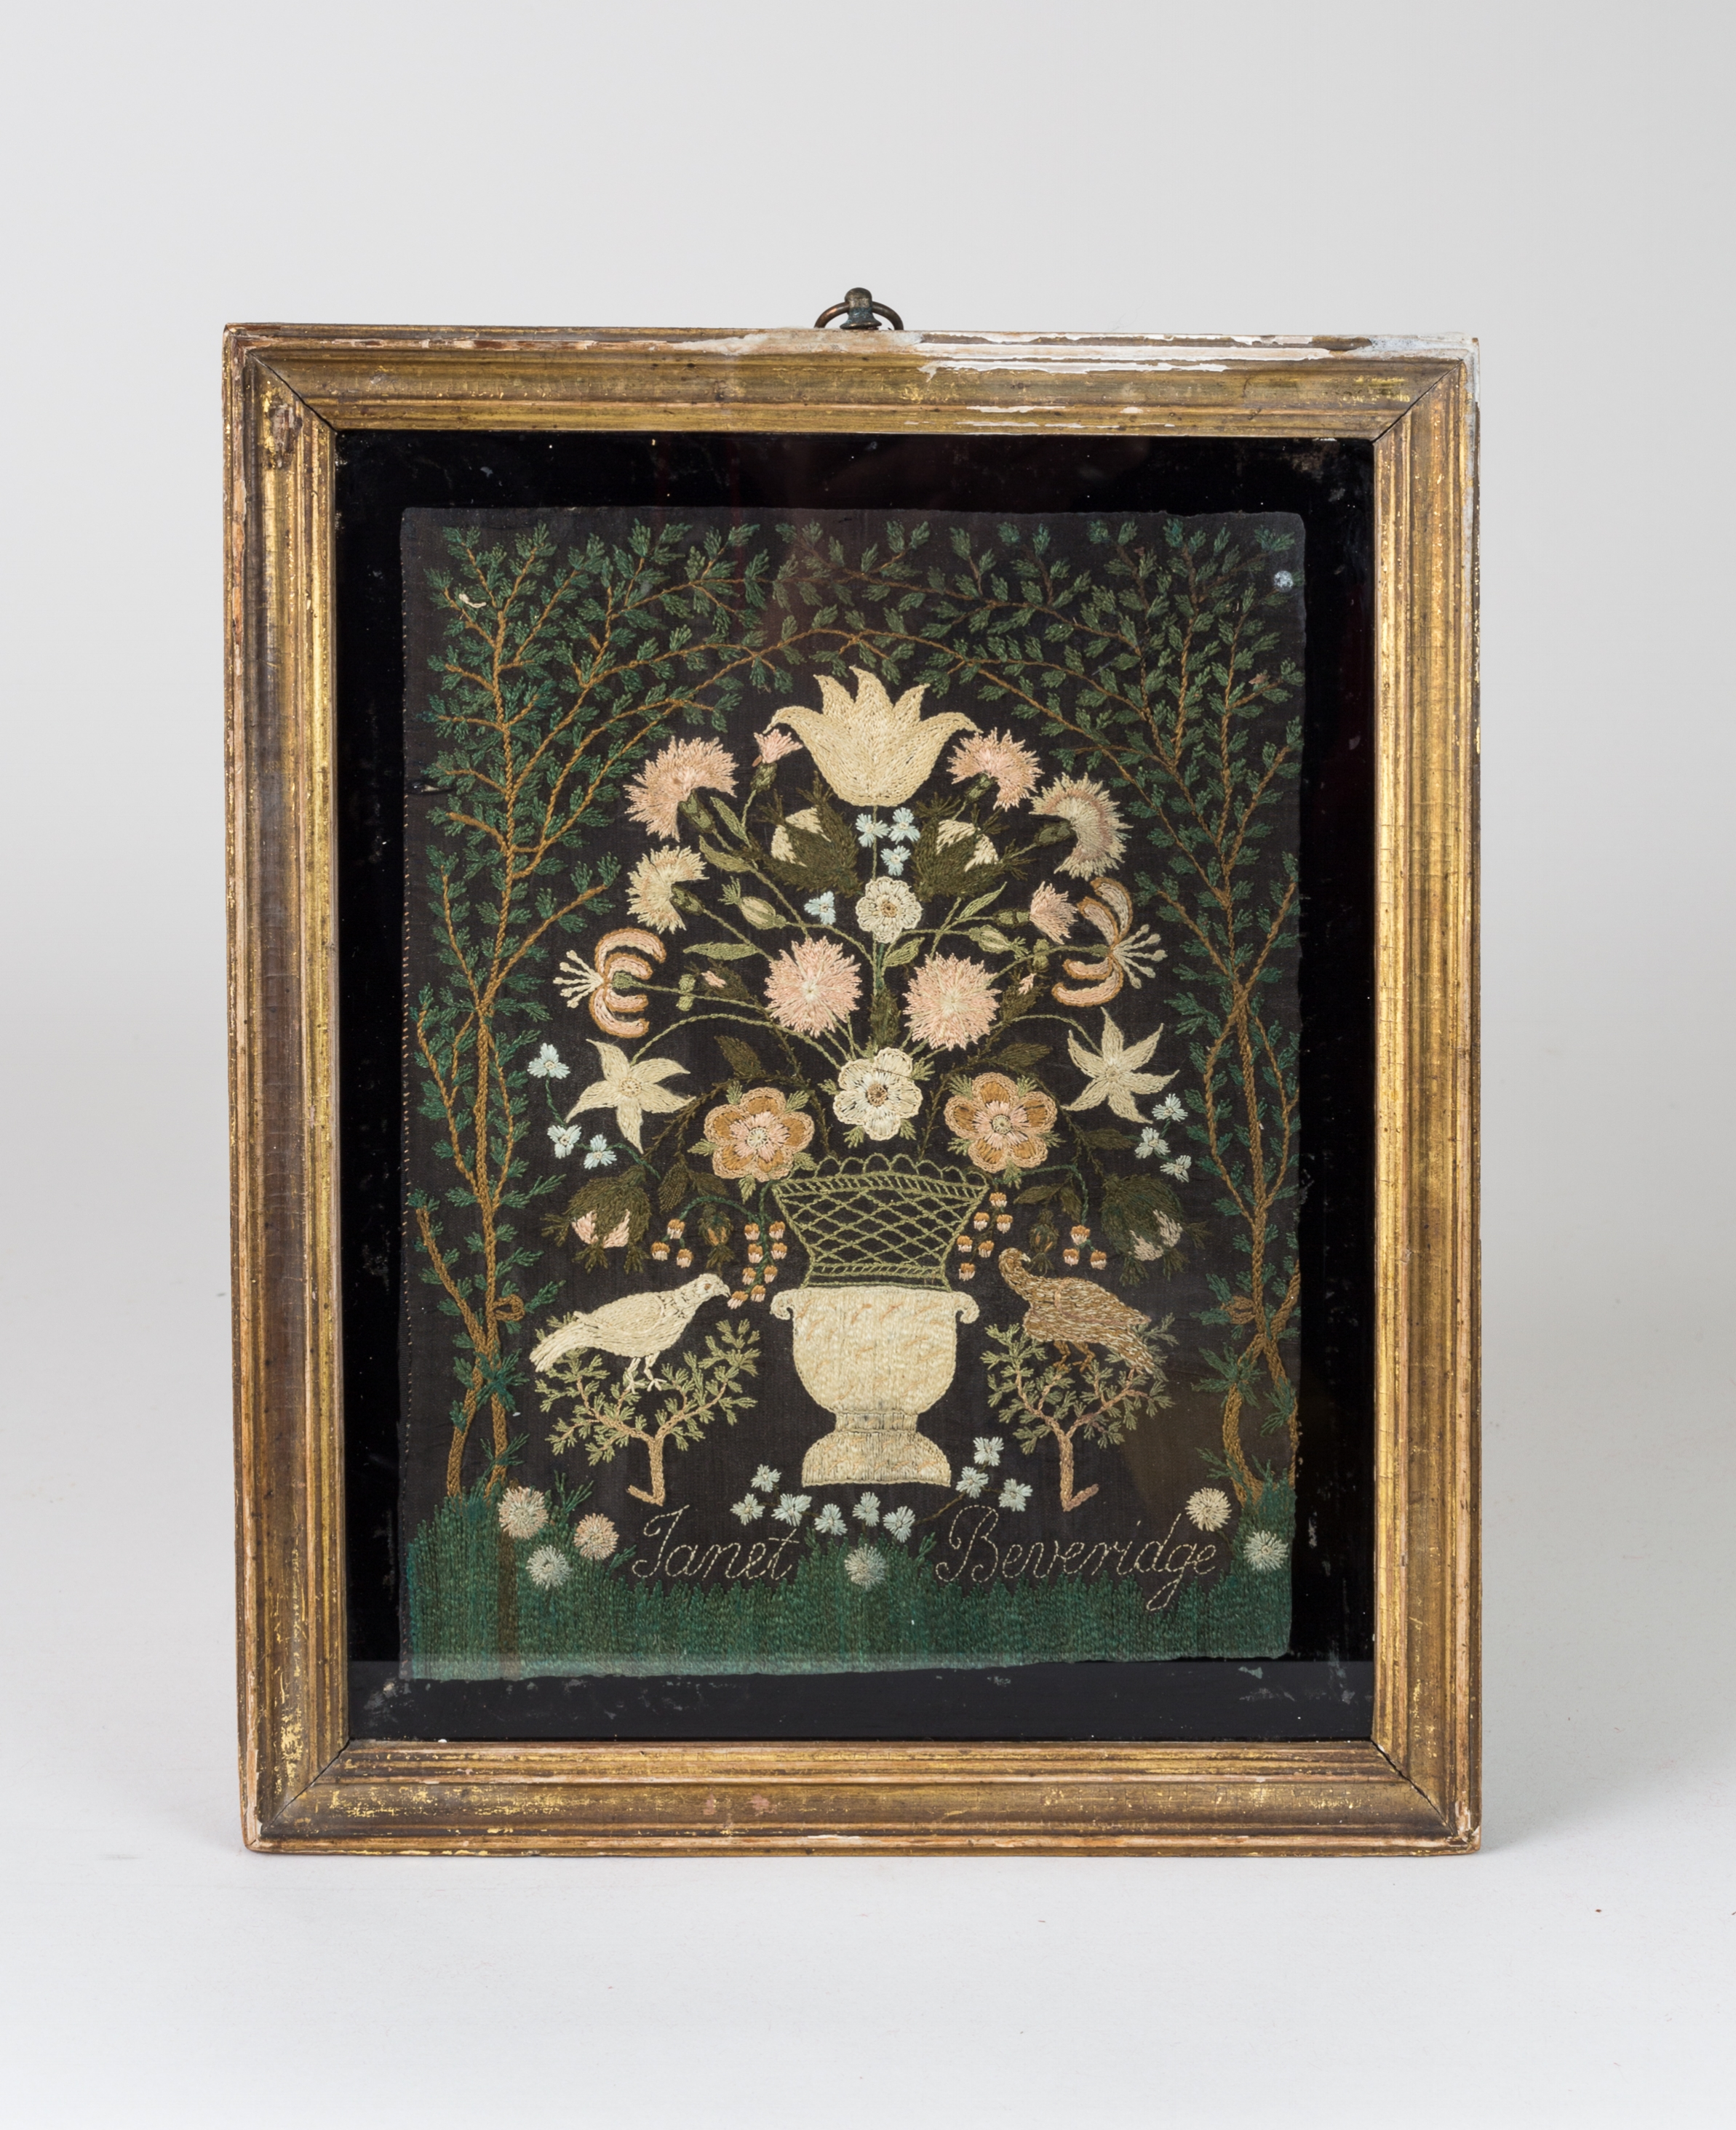 Charming Needlework Picture